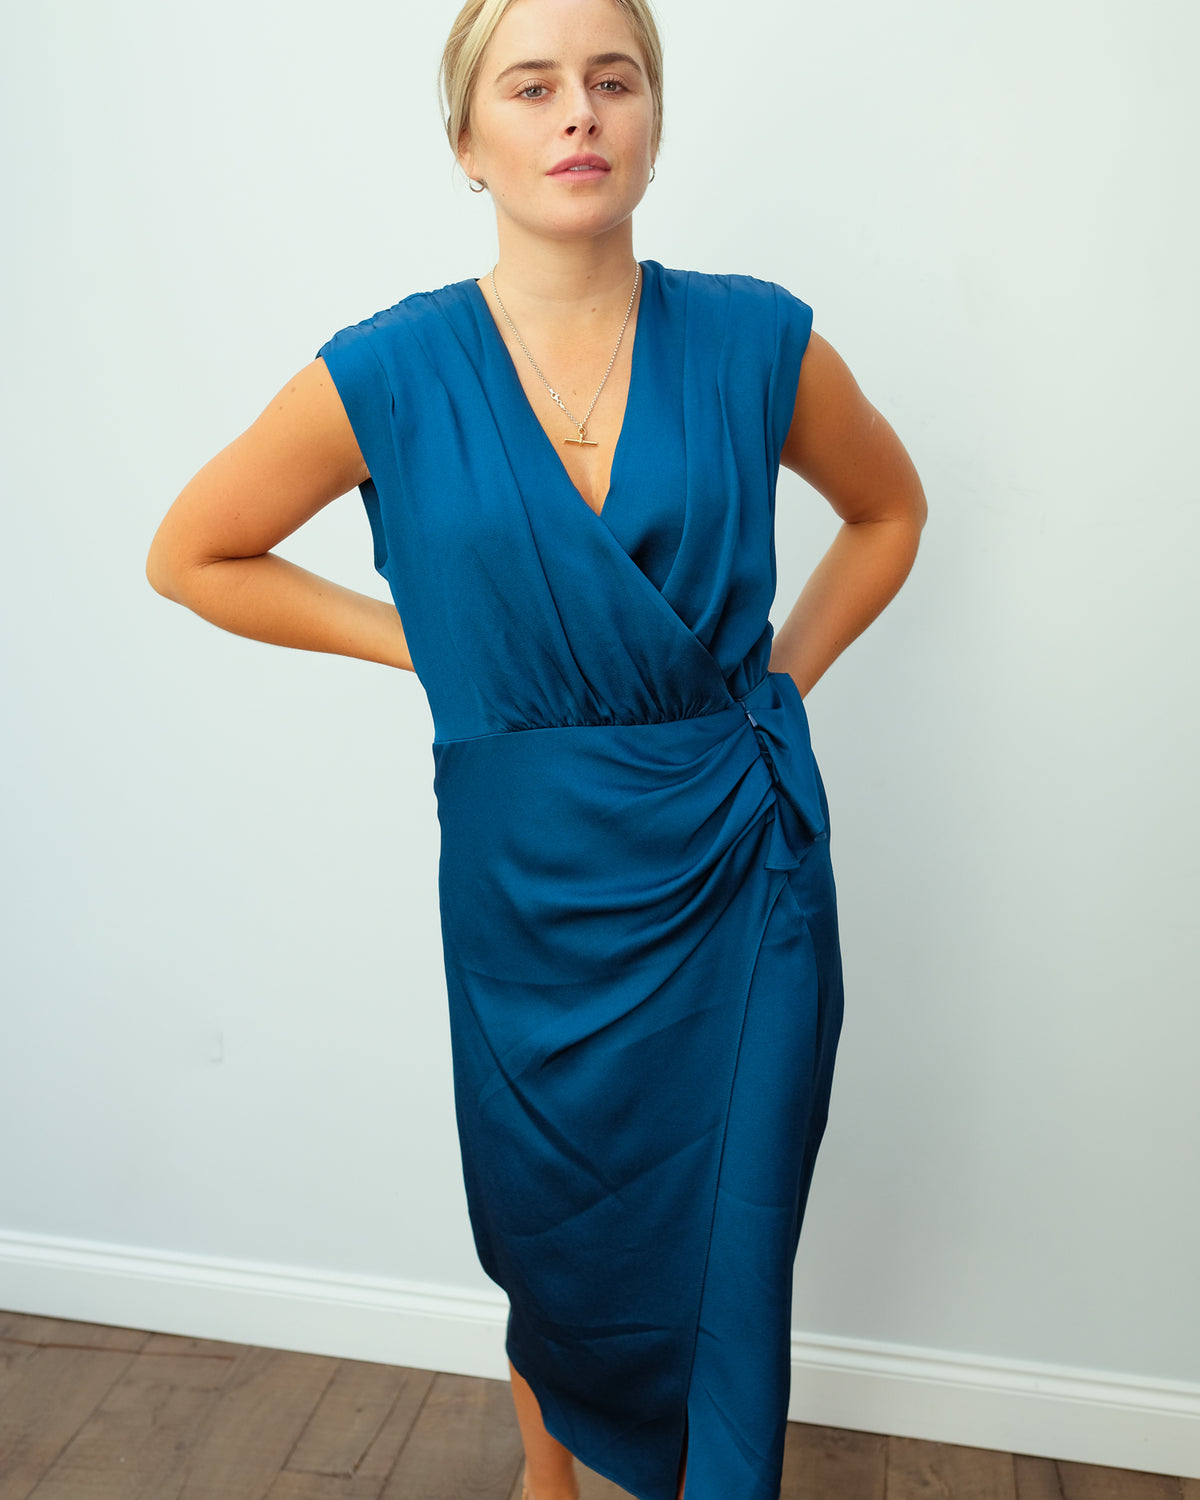 VB Clarissa Dress in Cerulean